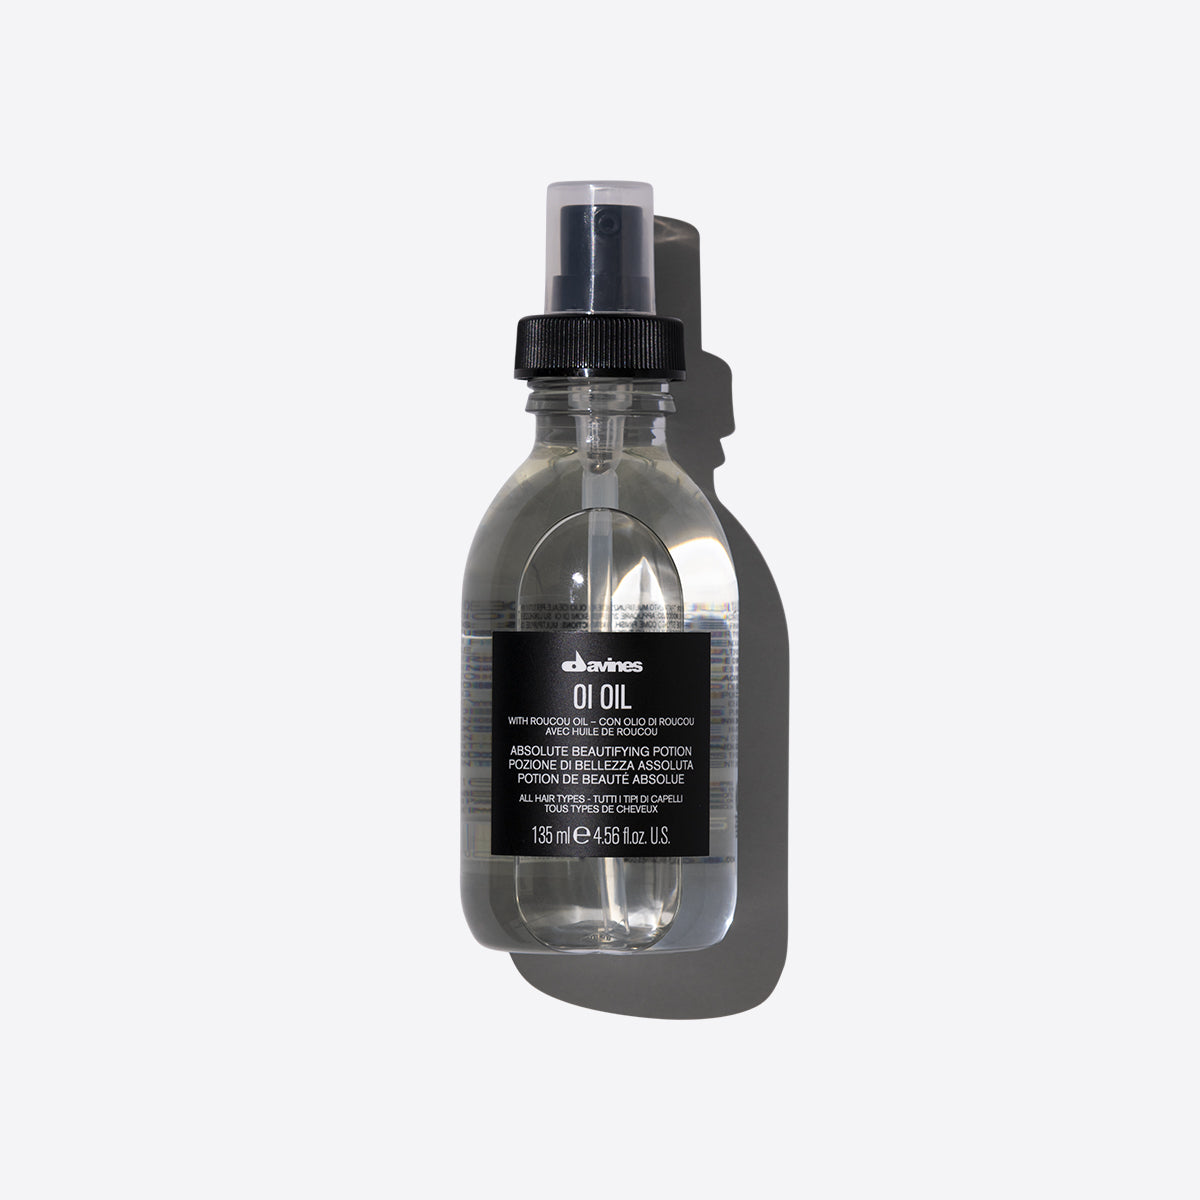 OI Oil 1  135 ml / 4,56 fl.oz.Davines